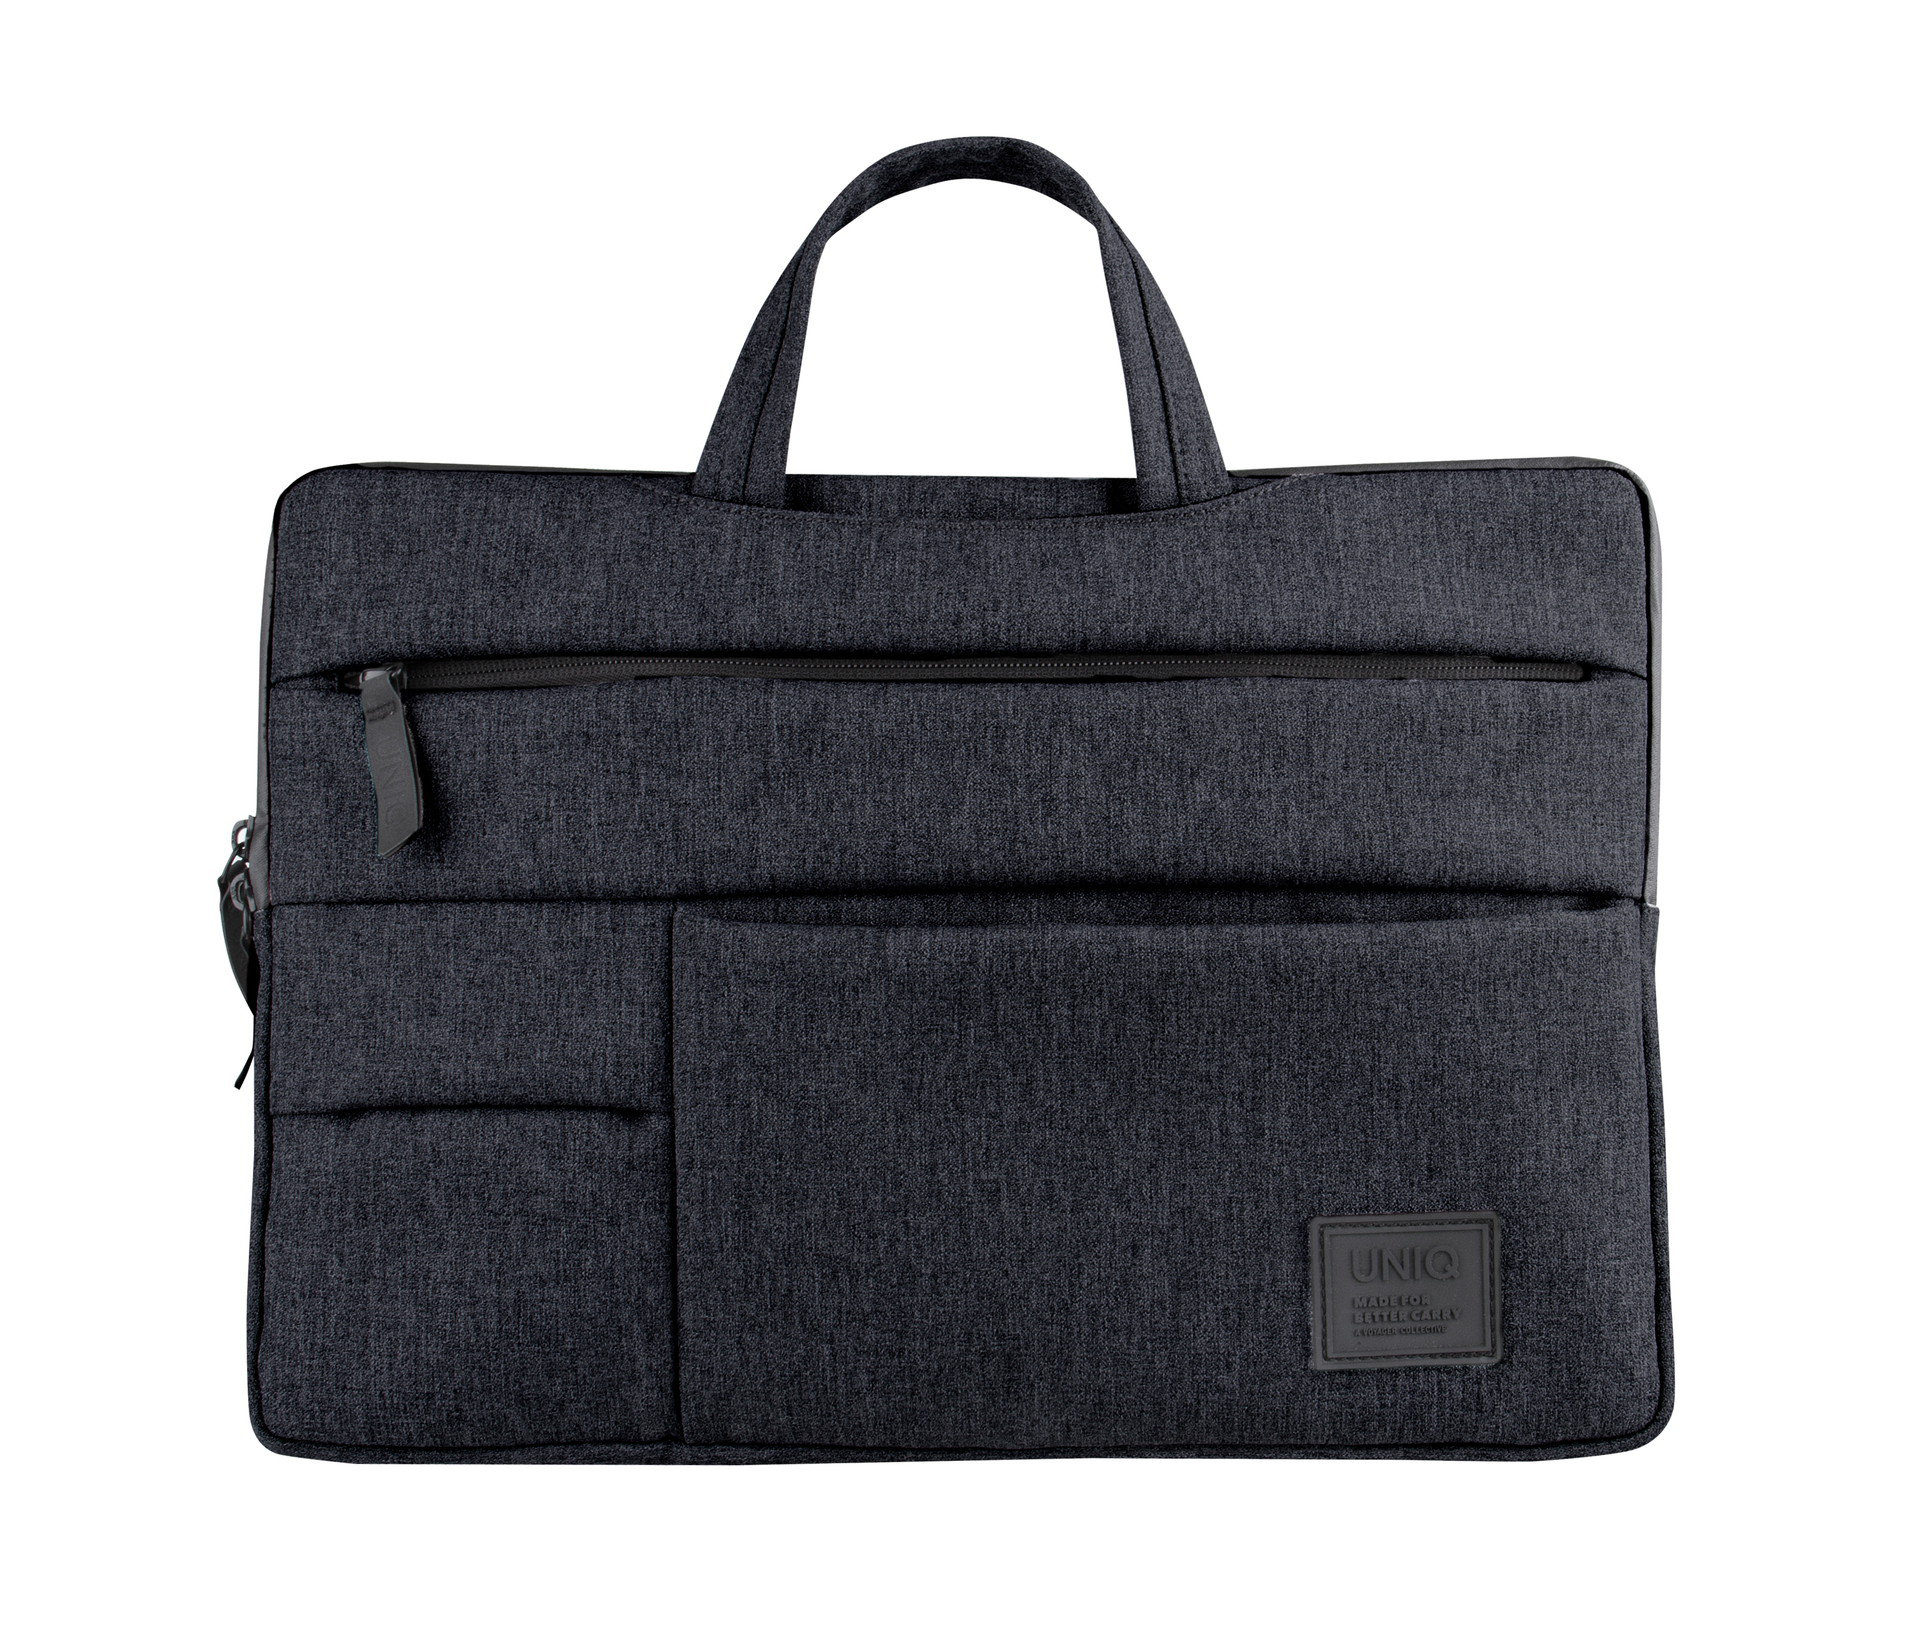 Uniq Cavalier 2-in-1 Laptop Sleeve (Up to 15 Inche) - Charcoal